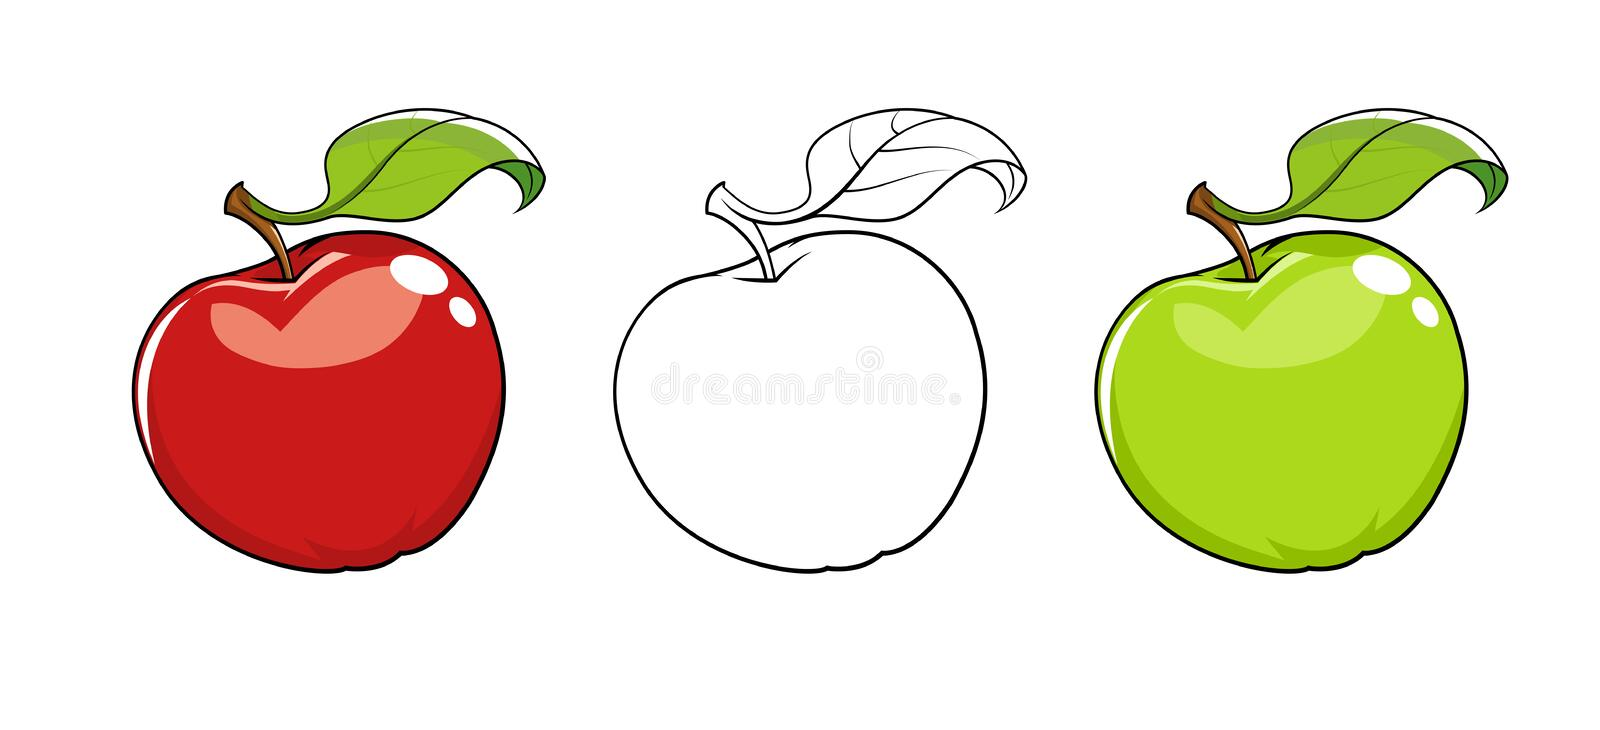 Ripe fresh apple with leaf. Set of vector illustration. White background. Red apple. Green fruits. Healthy food royalty free illustration